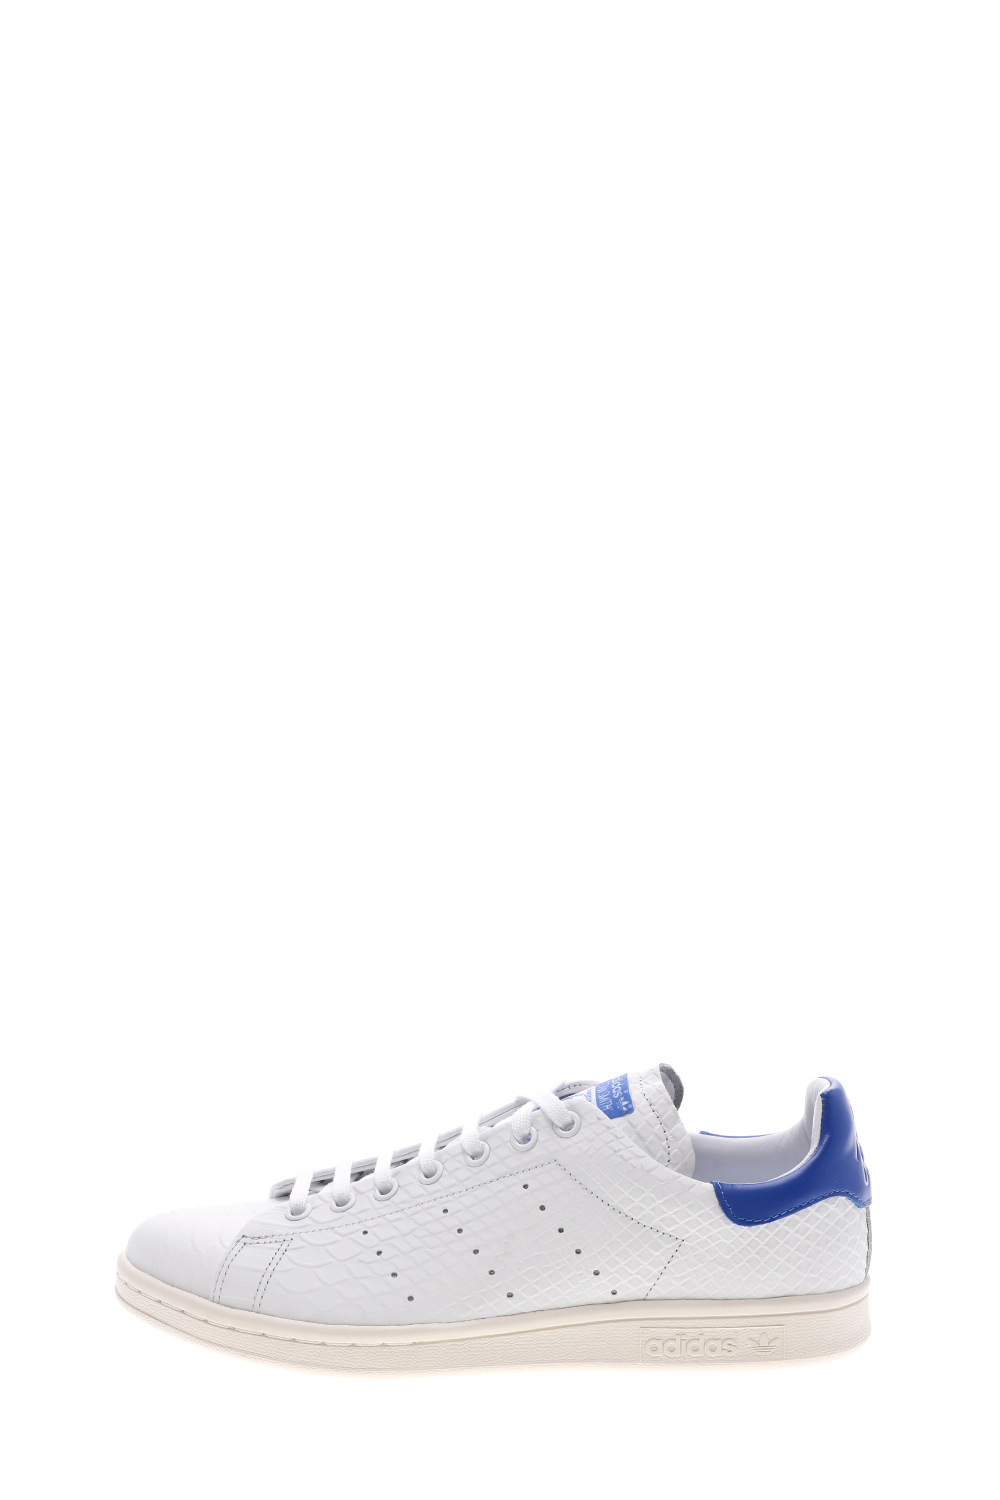 adidas Originals - Ανδρικά sneakers adidas Originals FU9587 STAN SMITH RECON λευκά μπλε